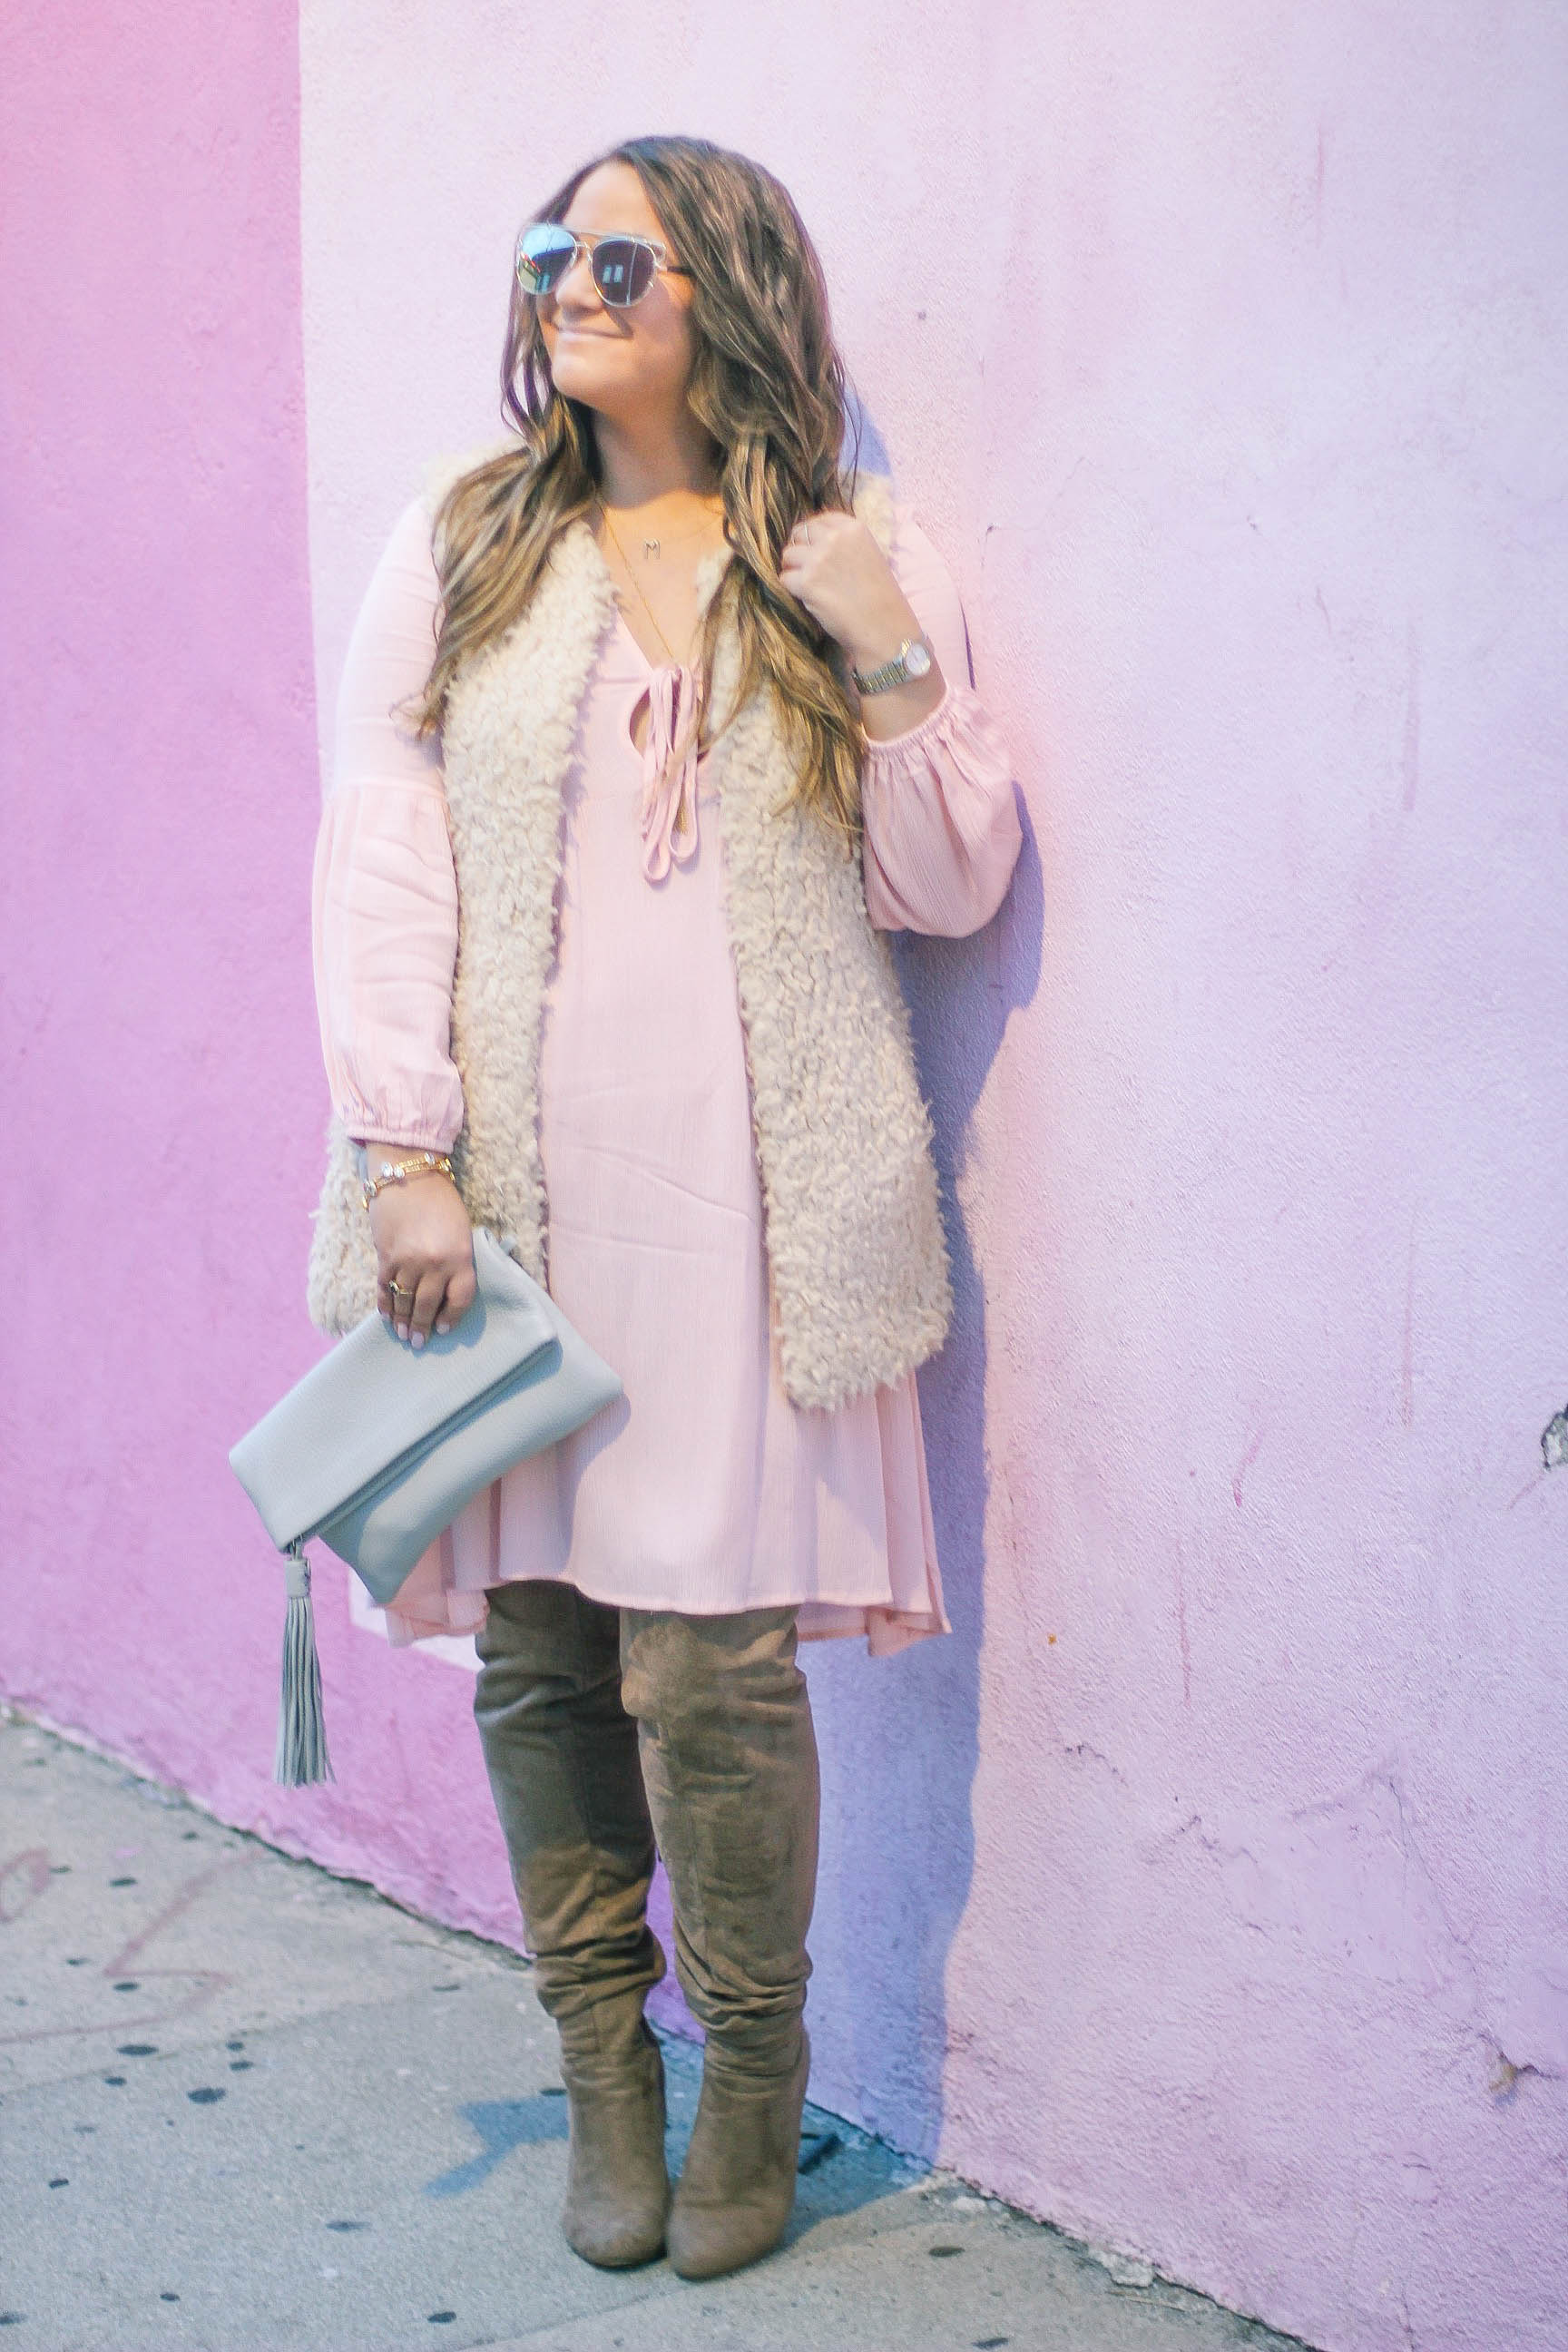 missyonmadison, melissa tierney, fashion blogger, la blogger, la style, fall style, zaful, pink dress, pink a line dress, faux fur vest, gigi ny, gigi new york clutch, otk boots, beige otk boots, style blogger, what i wore,